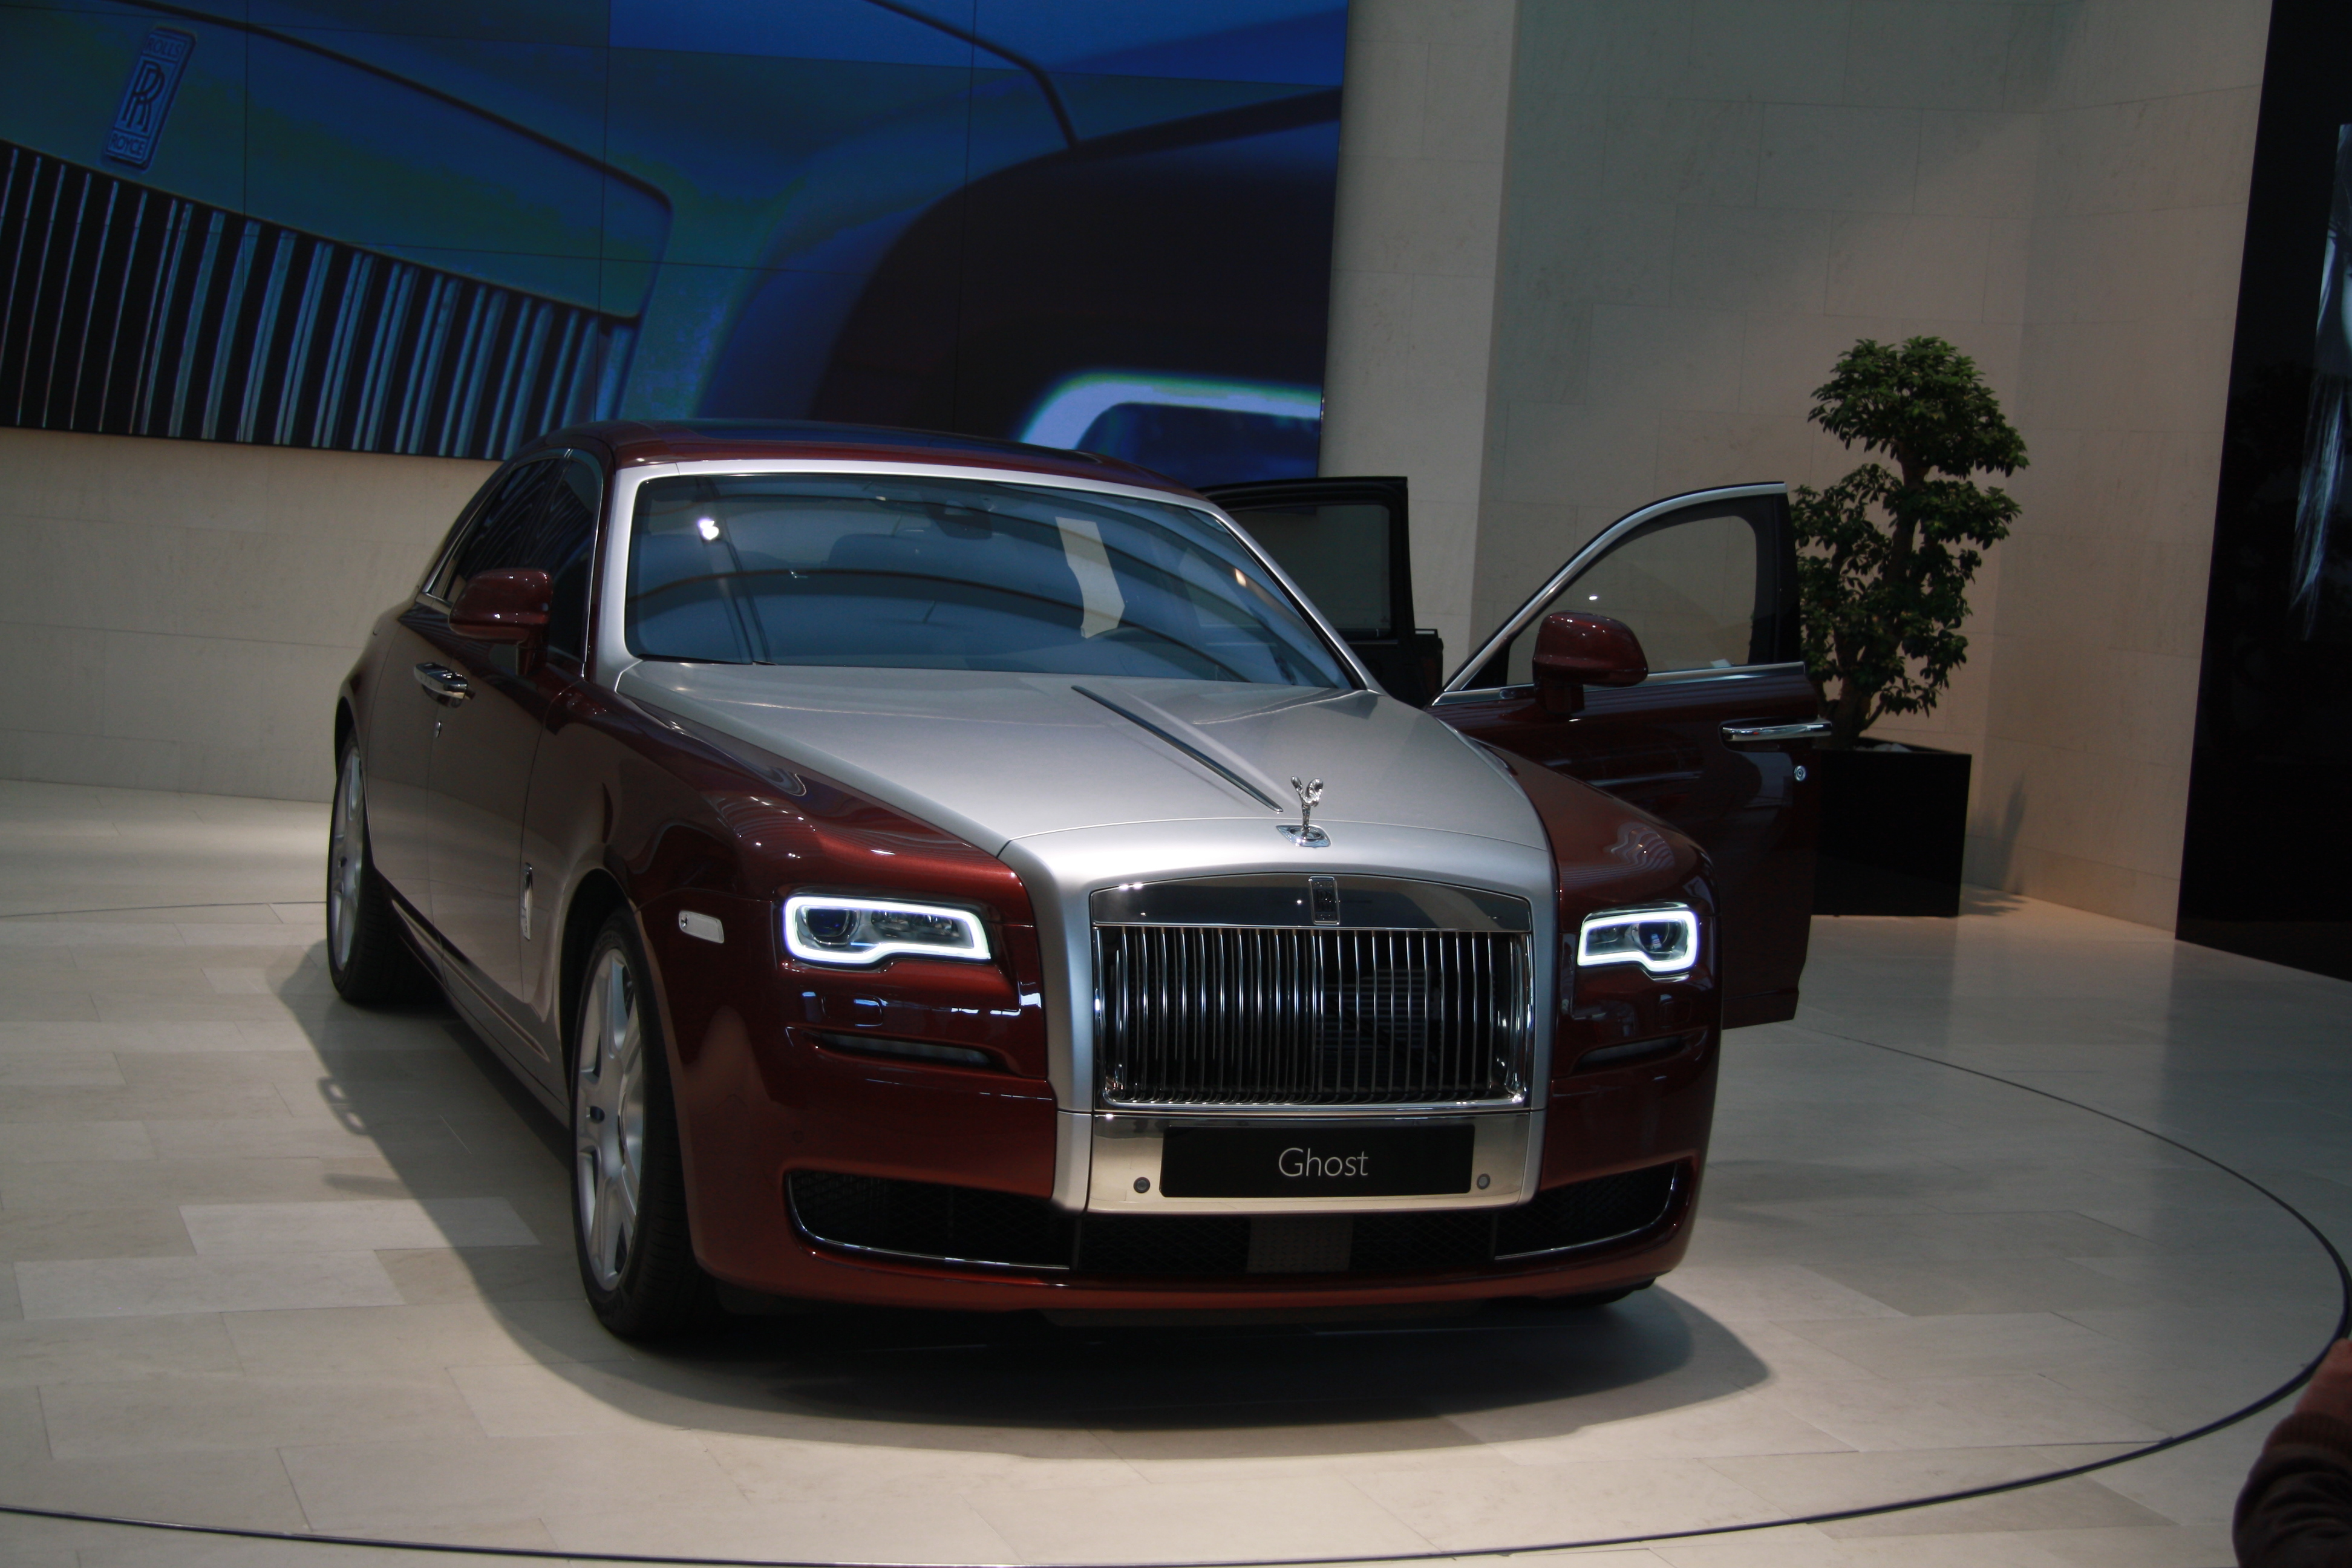 file rolls royce ghost red in bmw museum in munich bayern jpg wikimedia commons. Black Bedroom Furniture Sets. Home Design Ideas